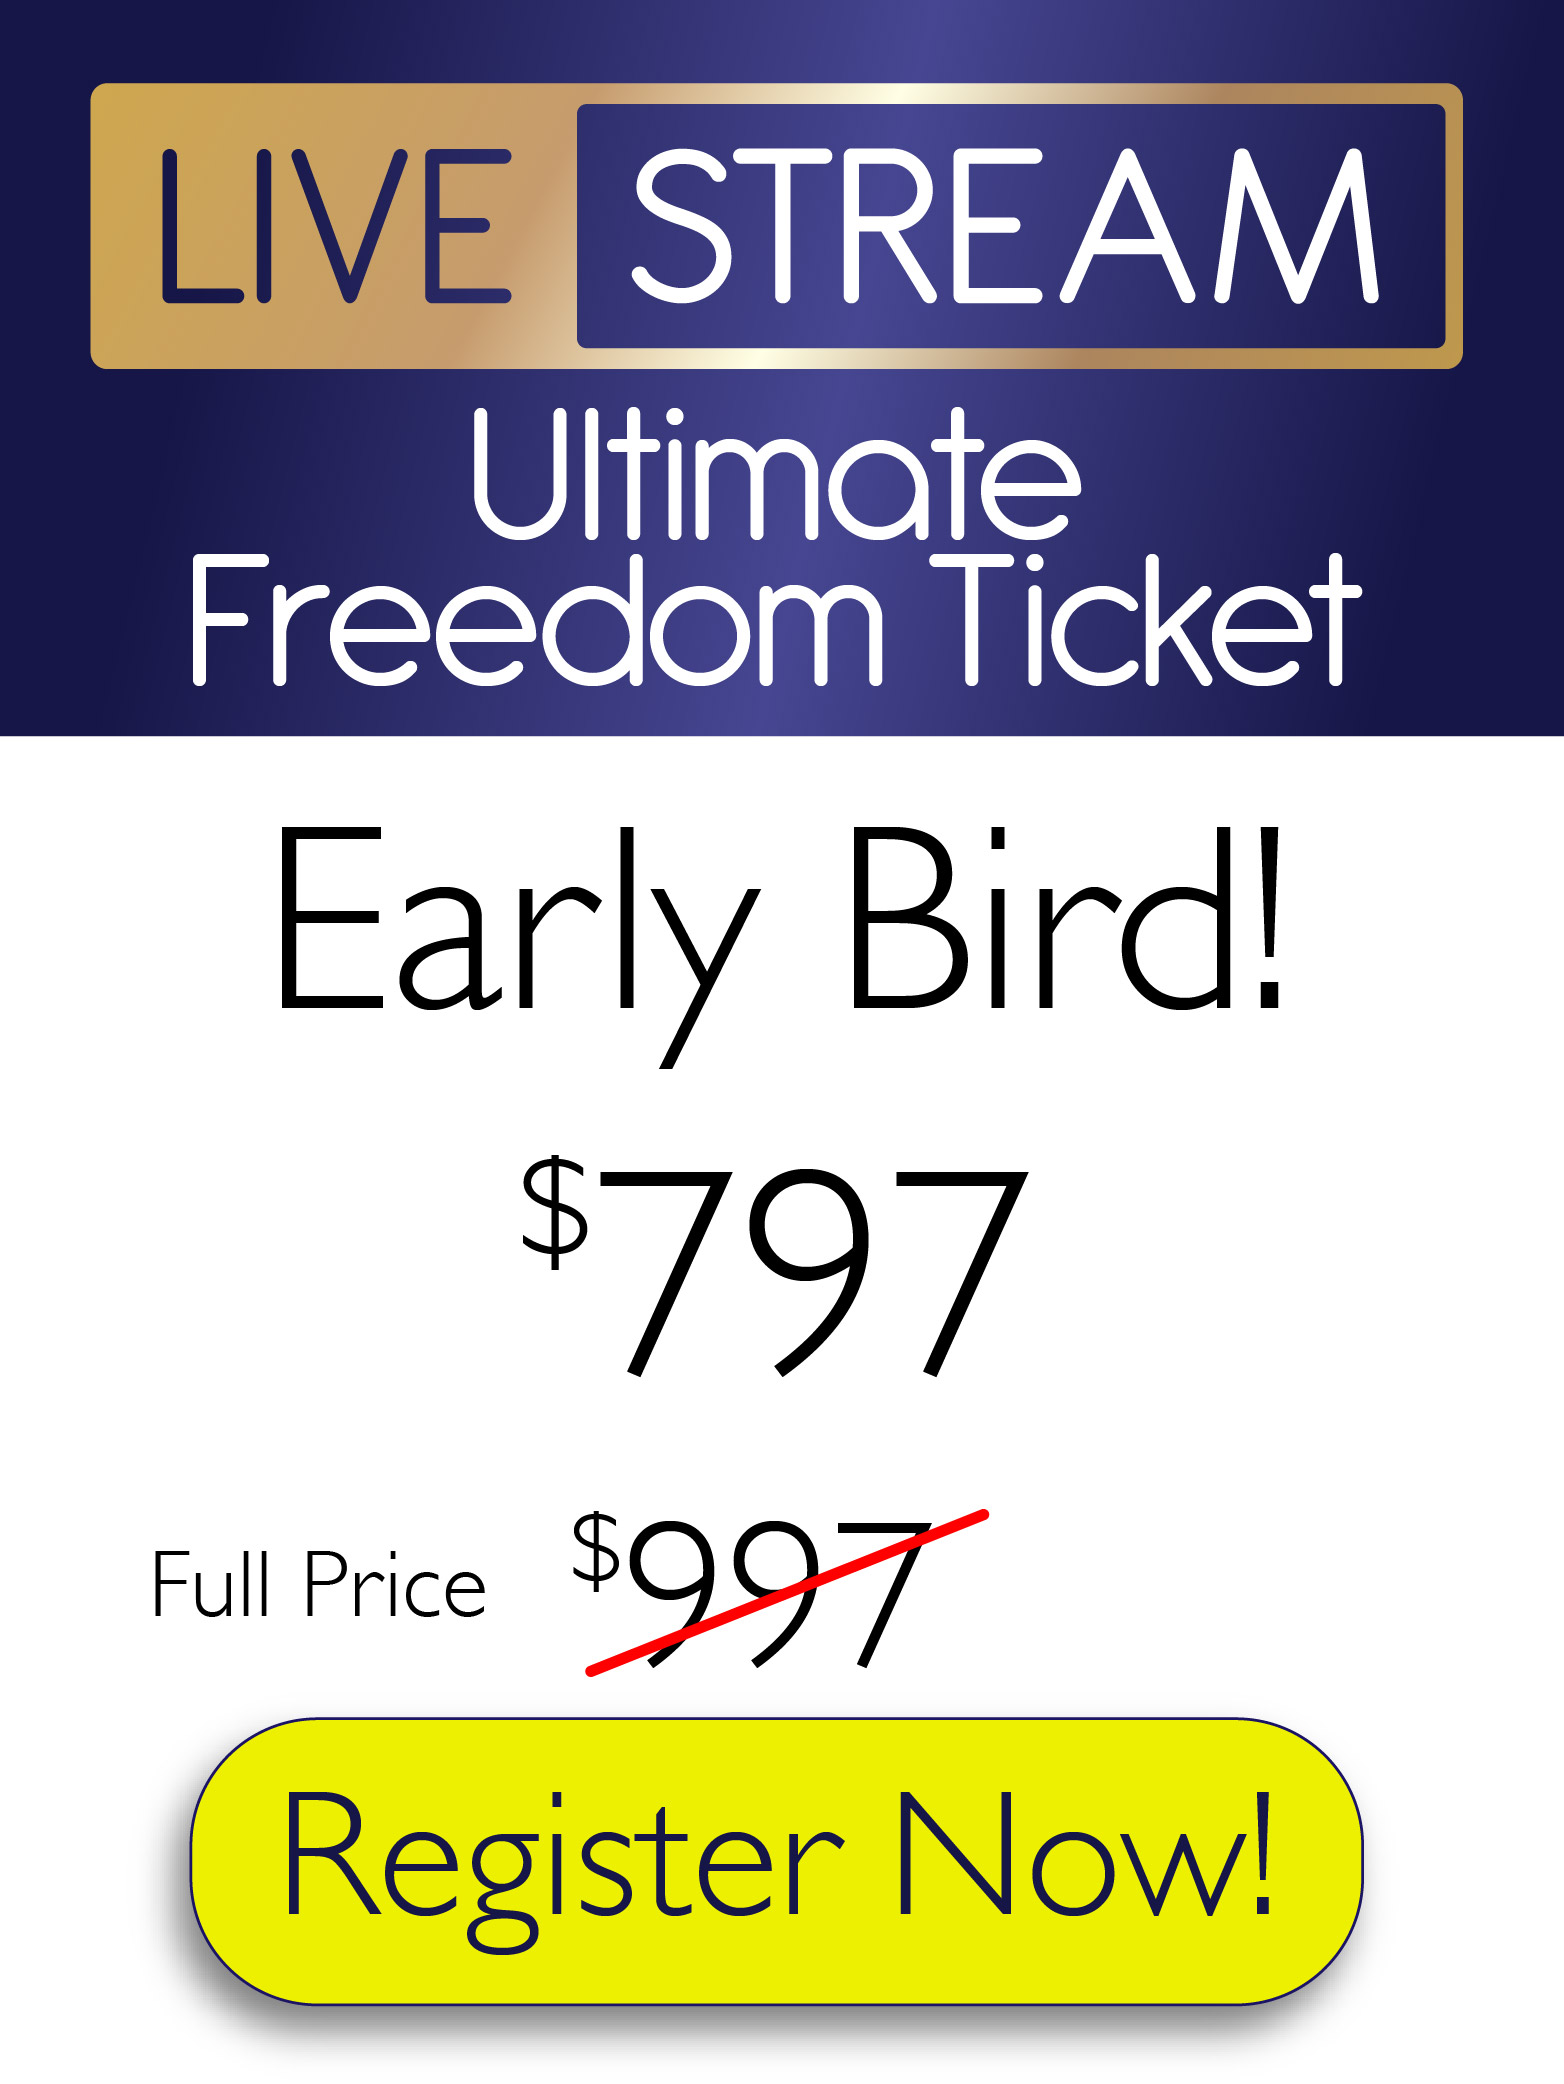 Ultimate freedom ticket